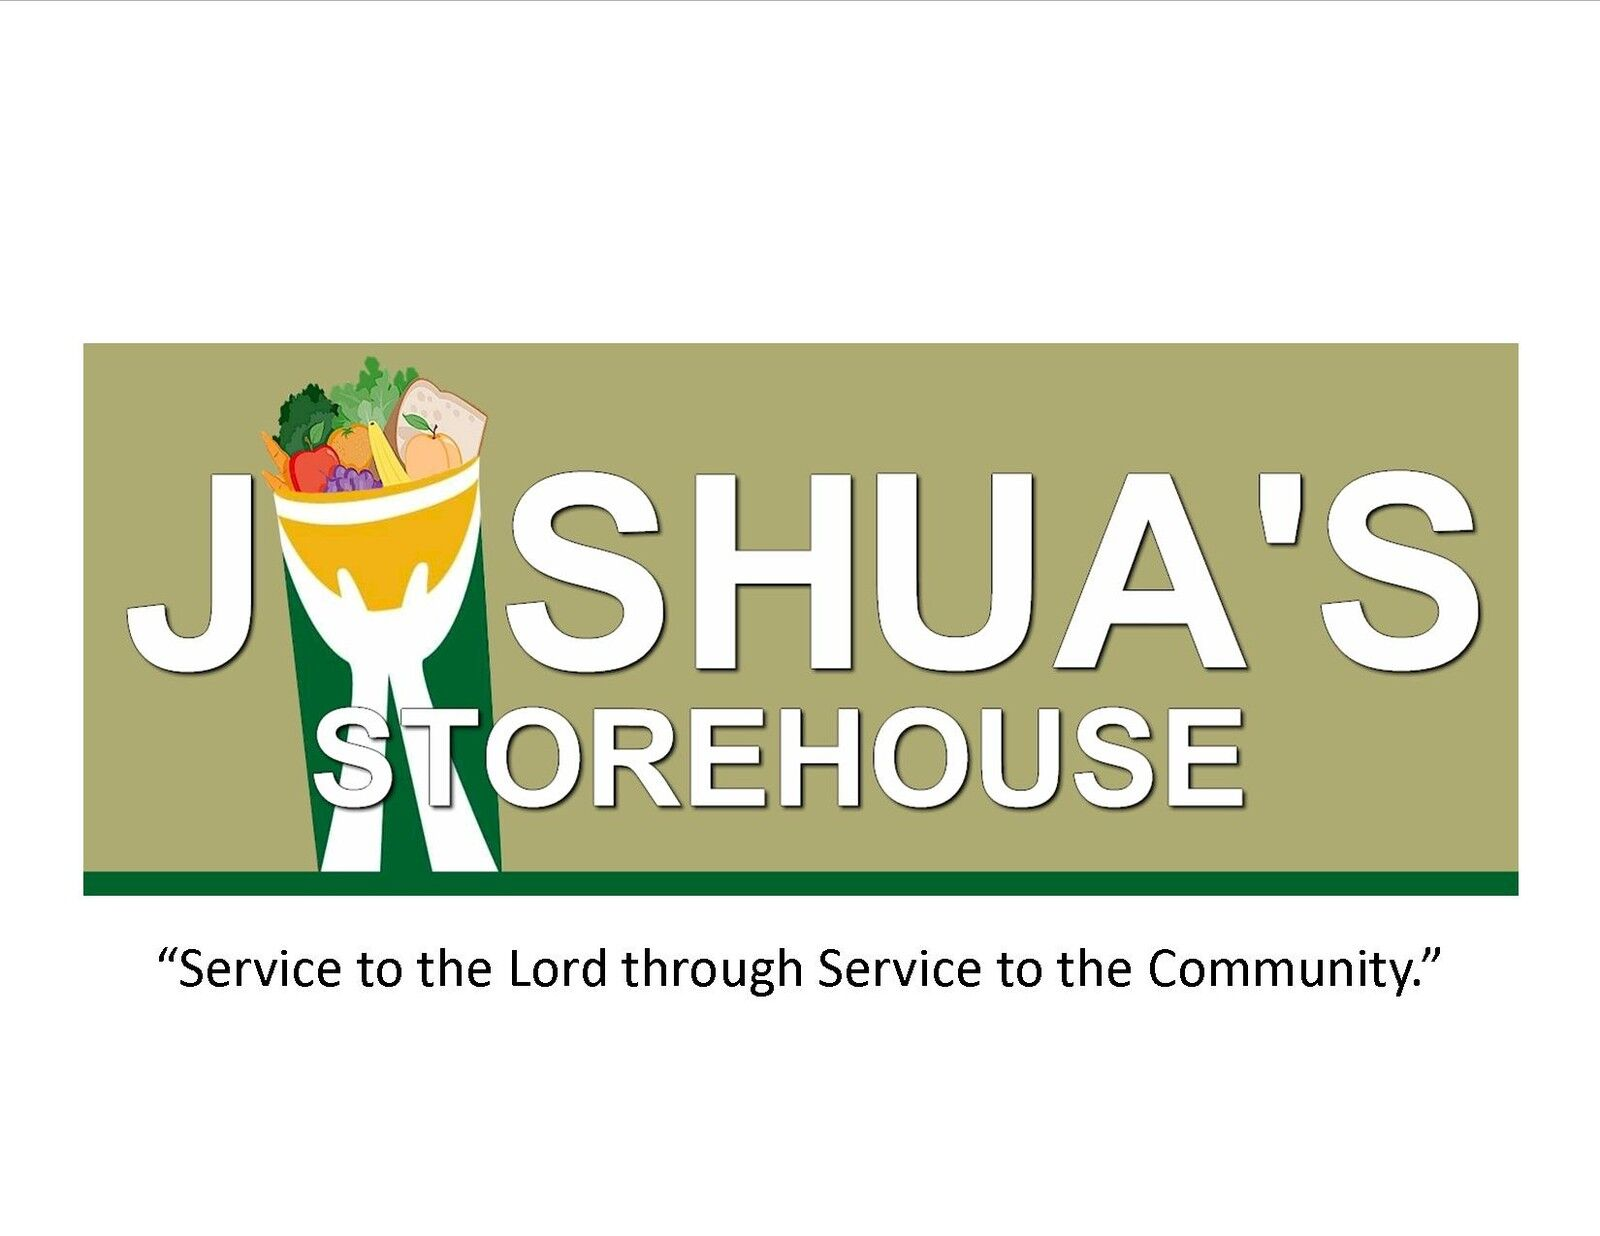 joshuas_storehouse